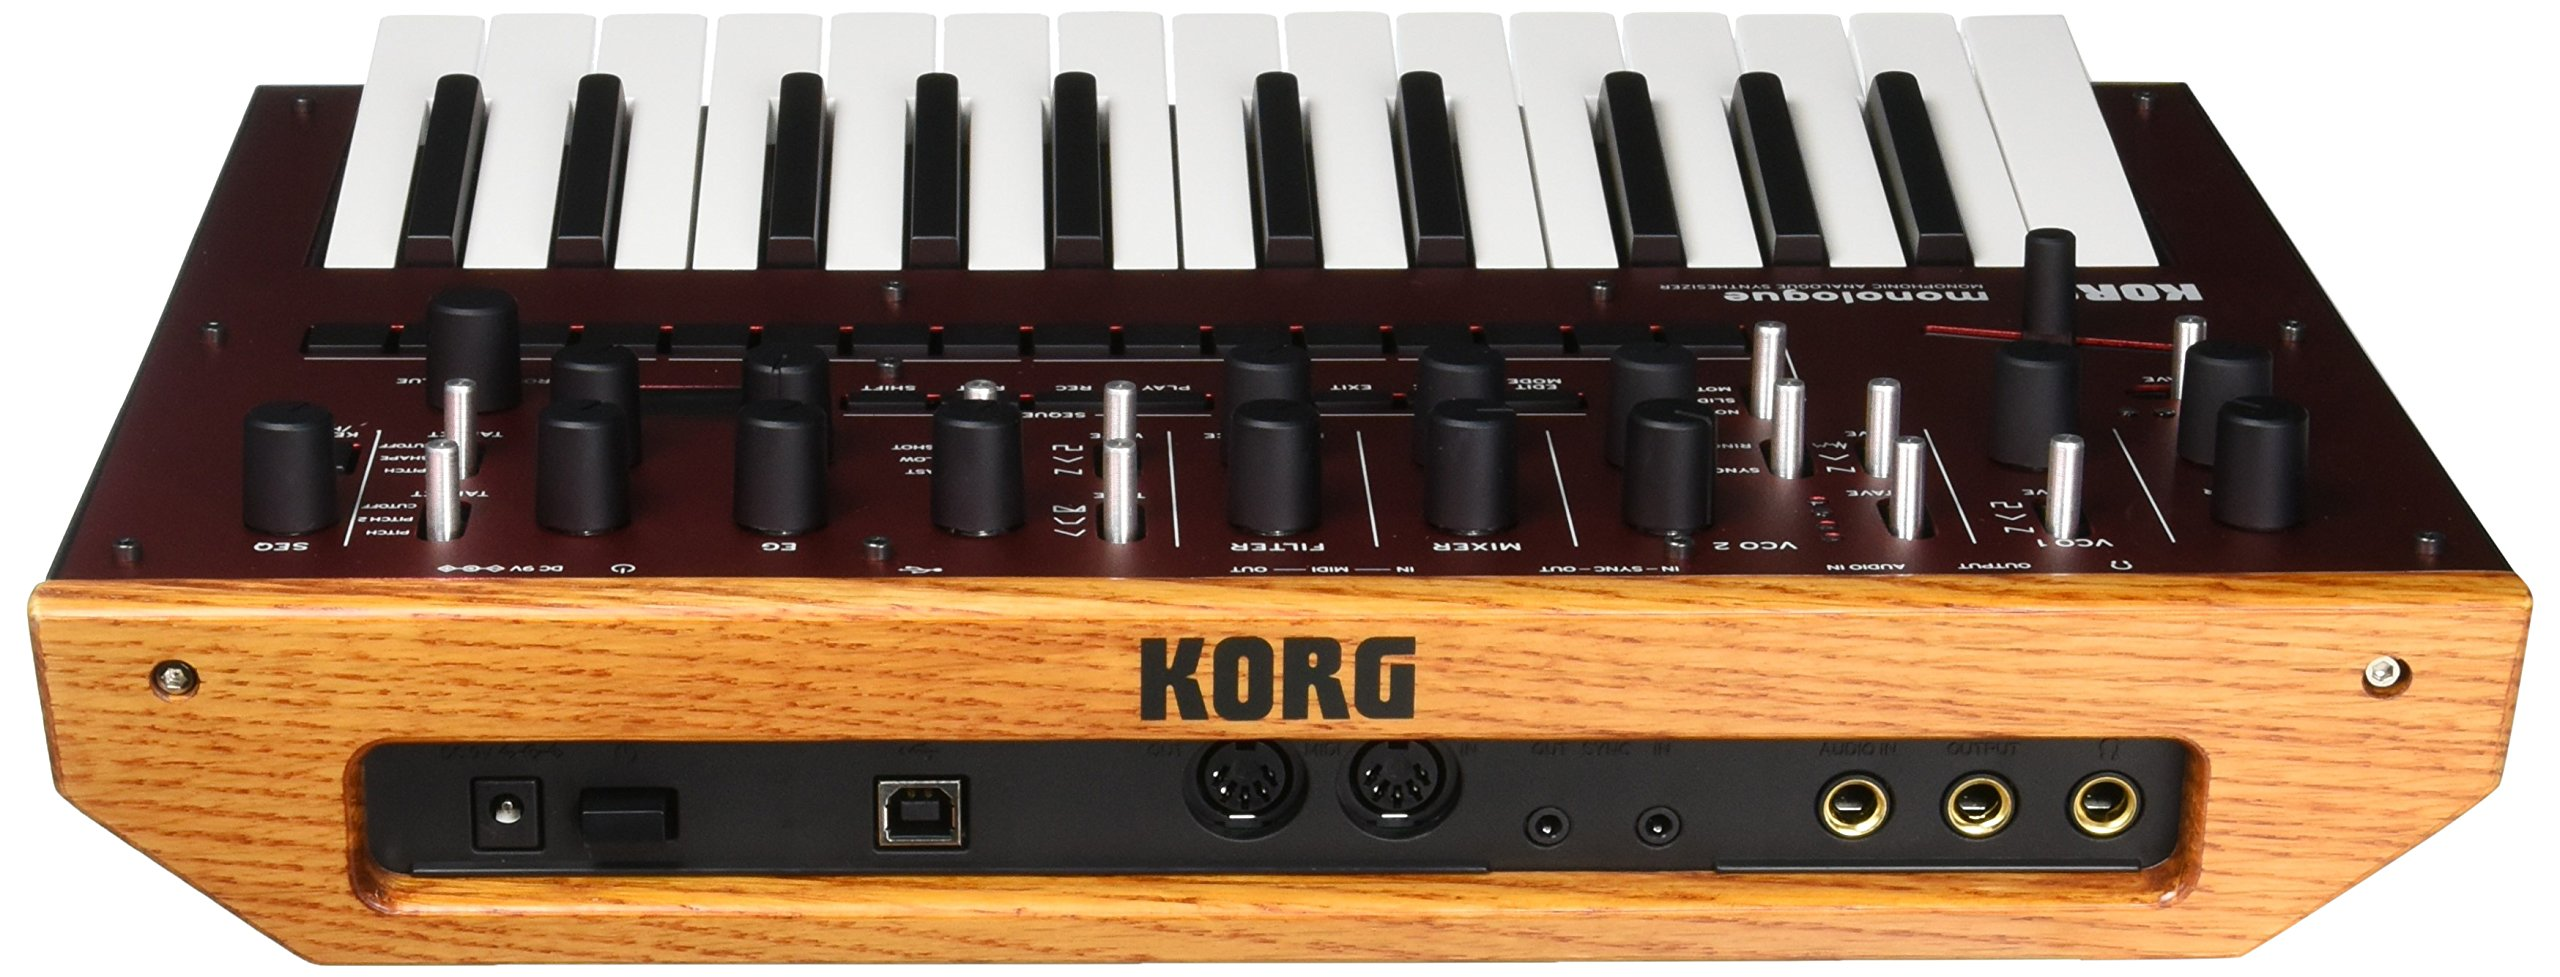 Korg Monologue Monophonic Analog Synthesizer with Presets-Red (MONOLOGUERD) by Korg